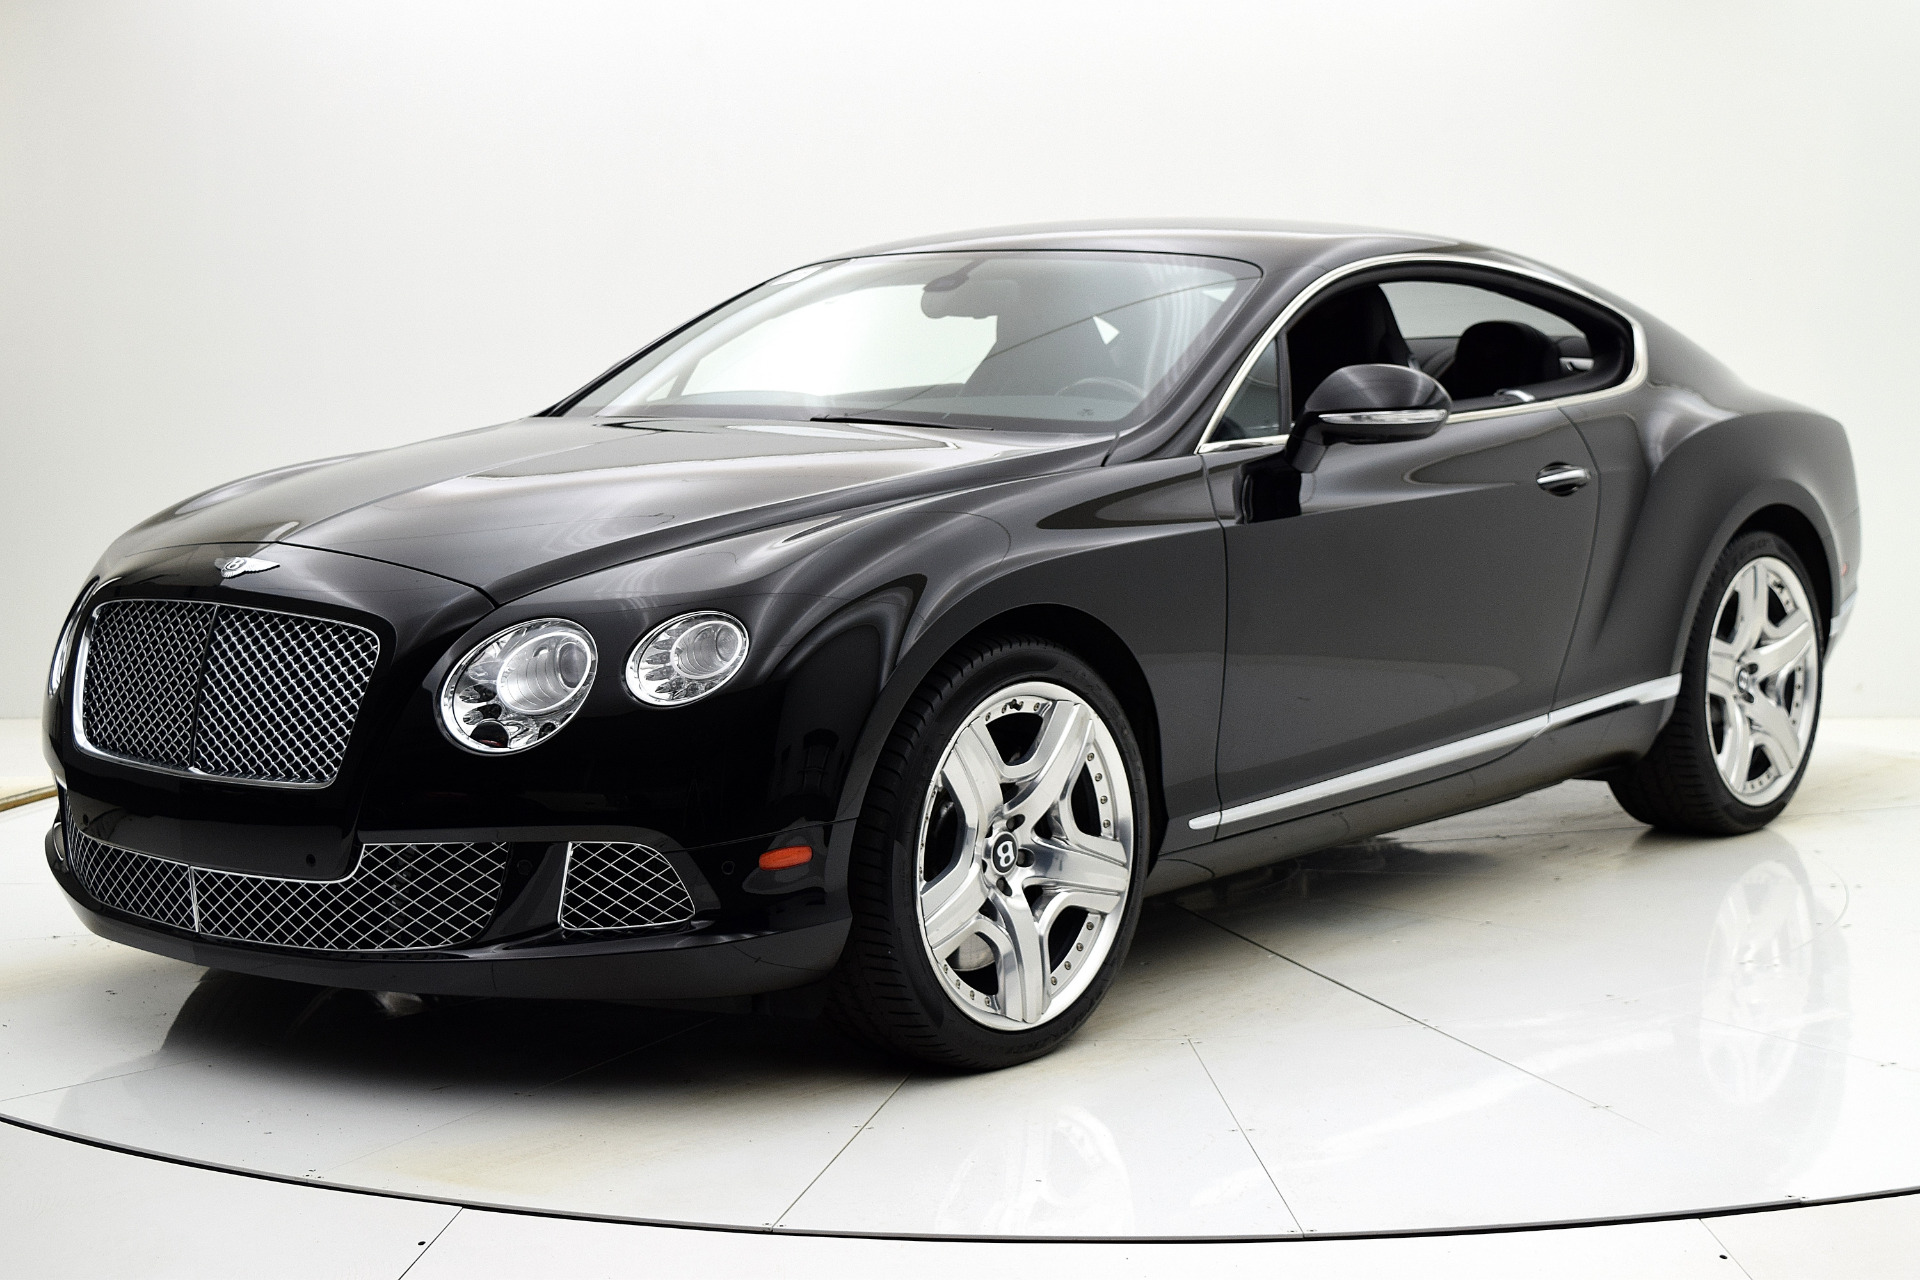 Used 2012 Bentley Continental GT W12 Coupe for sale Sold at Bentley Palmyra N.J. in Palmyra NJ 08065 2